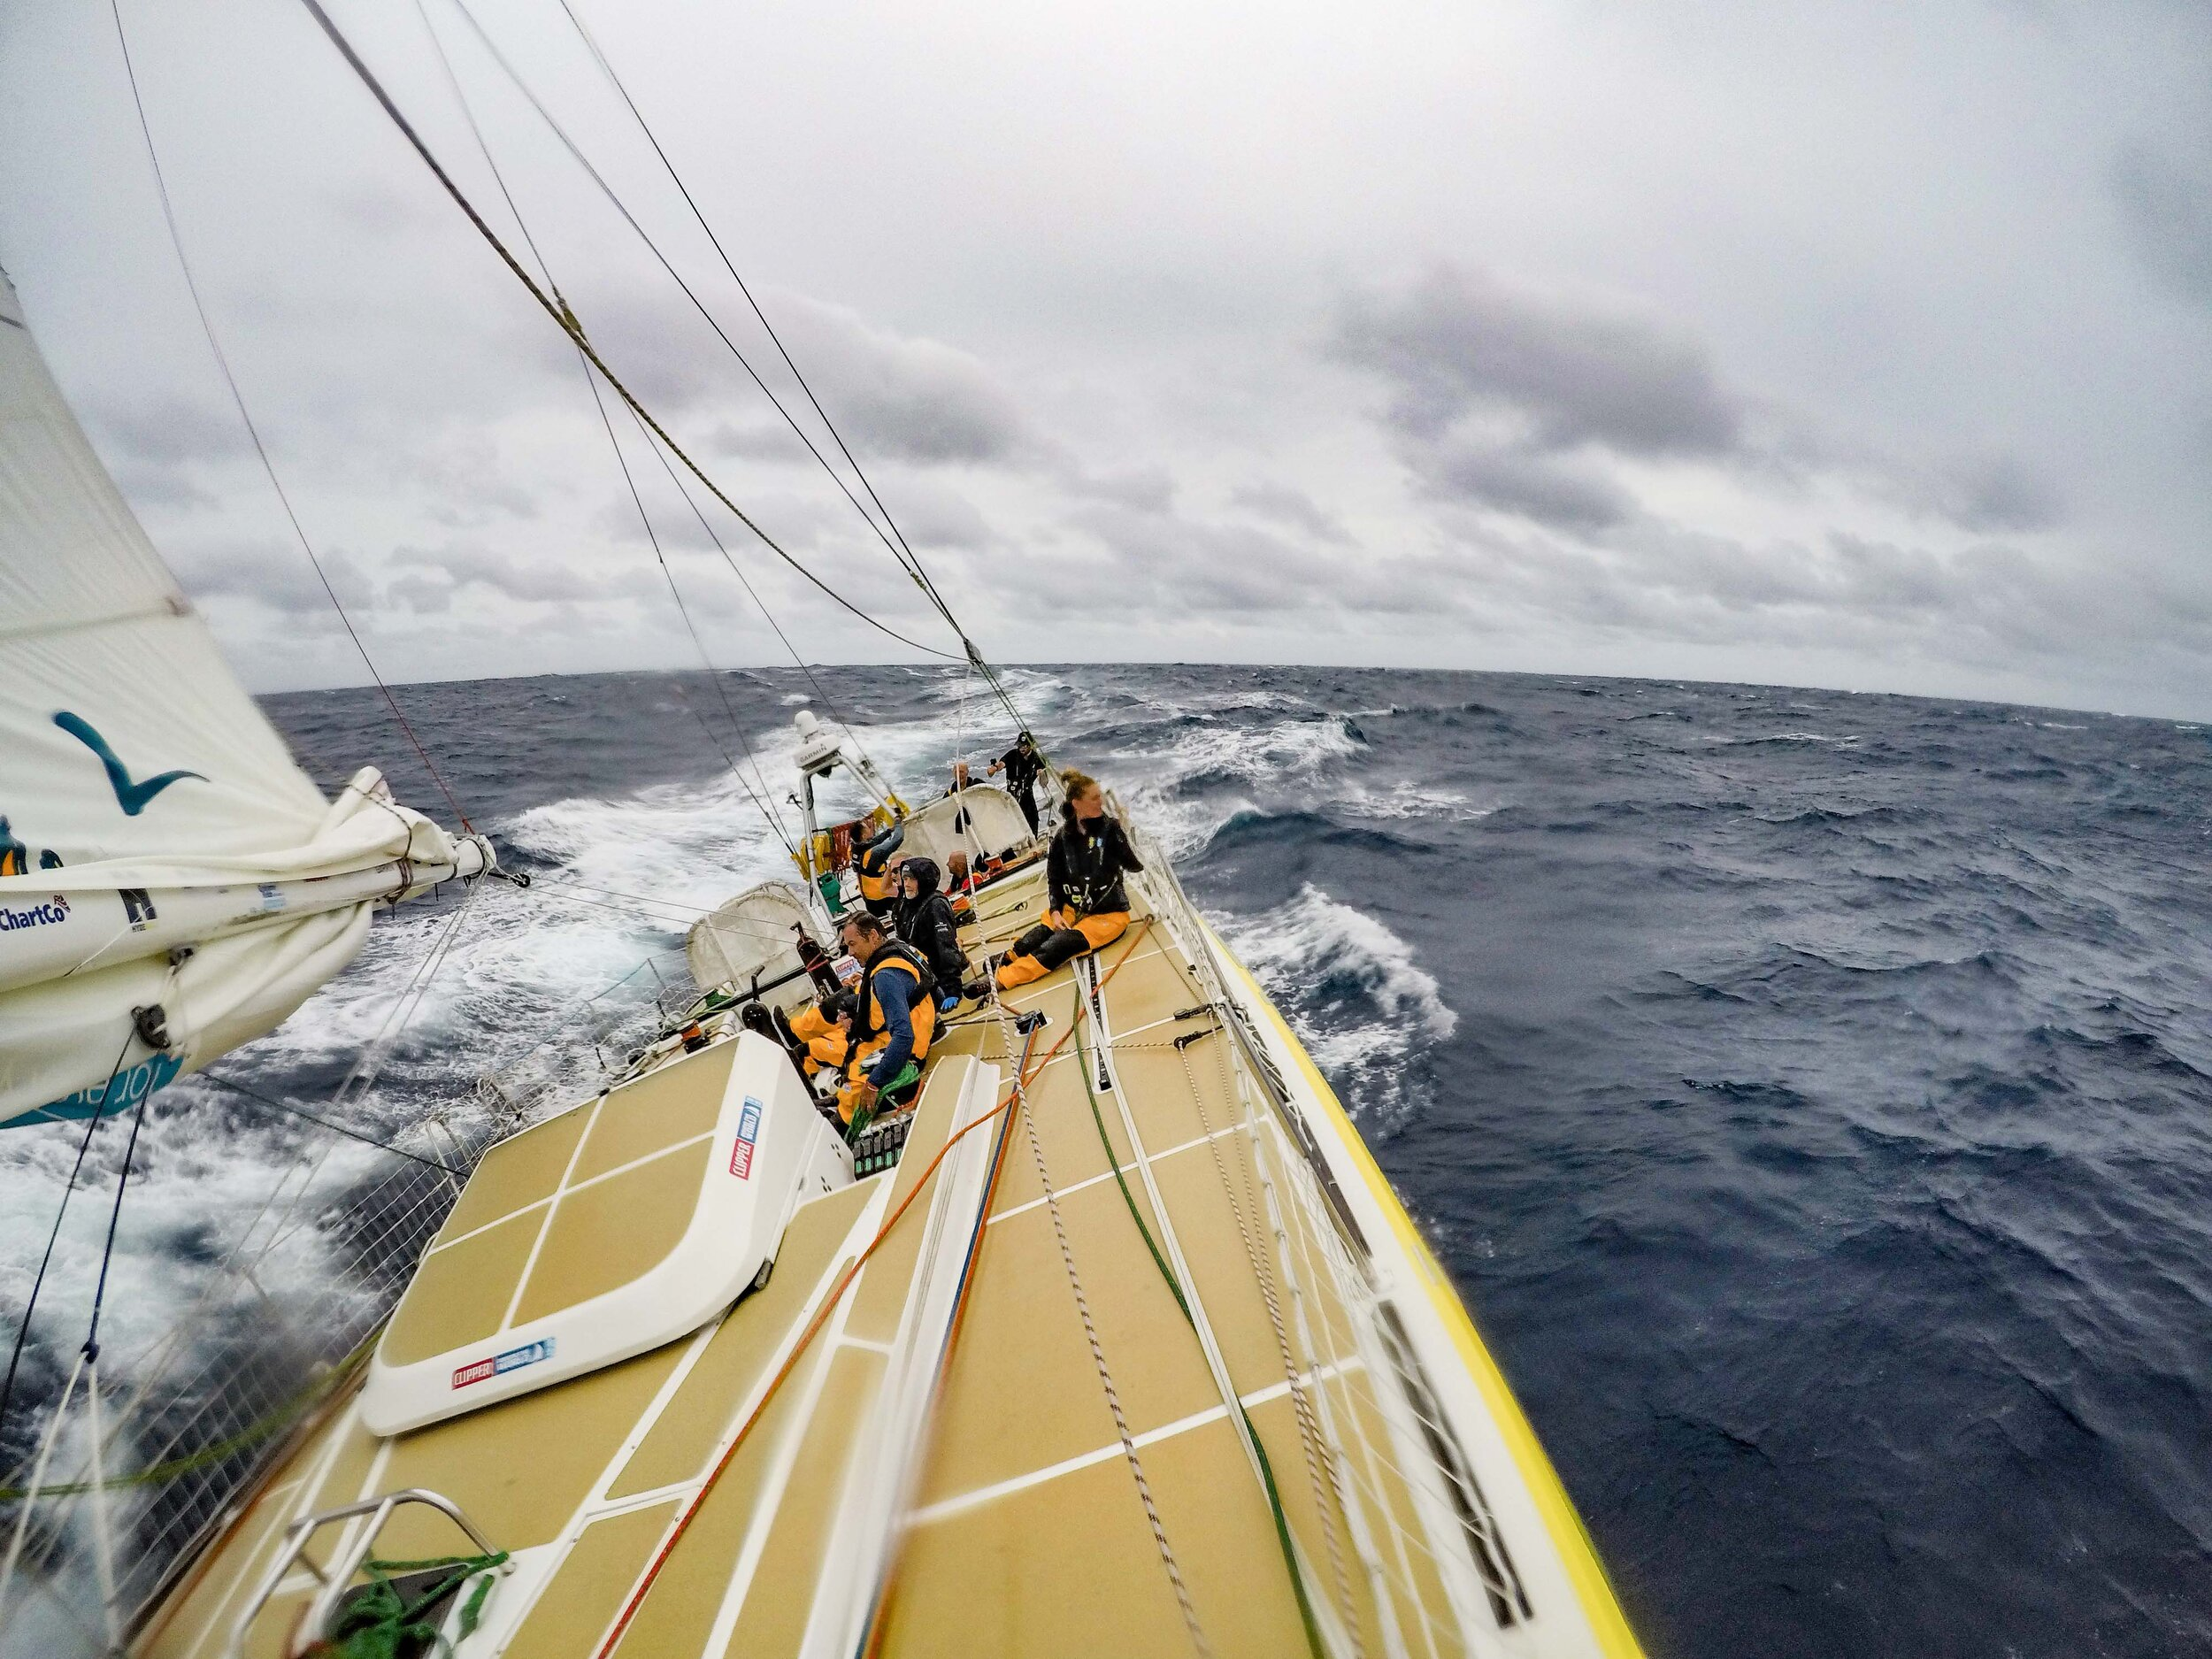 IMAGE: Cherie captured the approaching Tropical Storm Lorenzo on board Punta del Este.